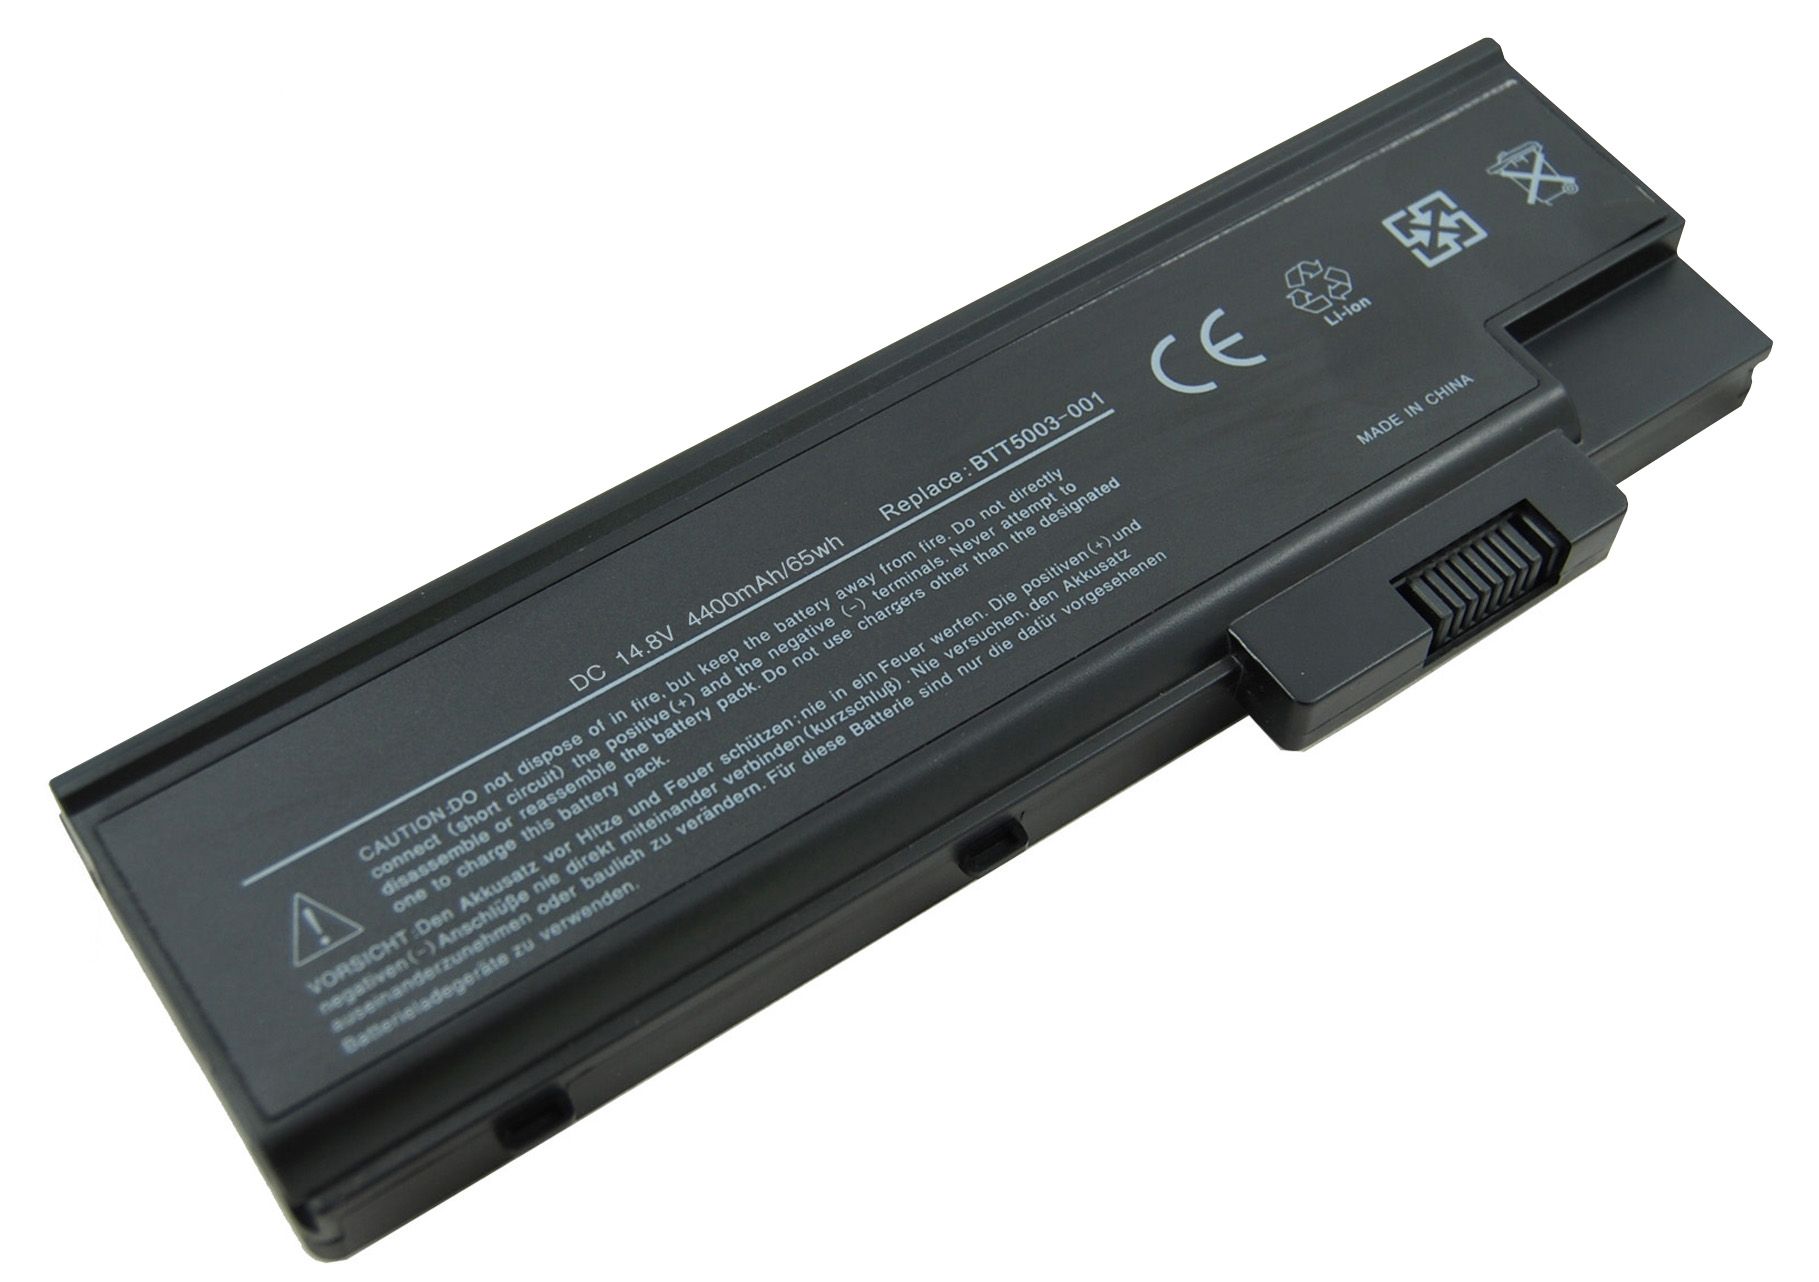 Bateria Portatil ACER Aspire 1410 BT.T5003.001